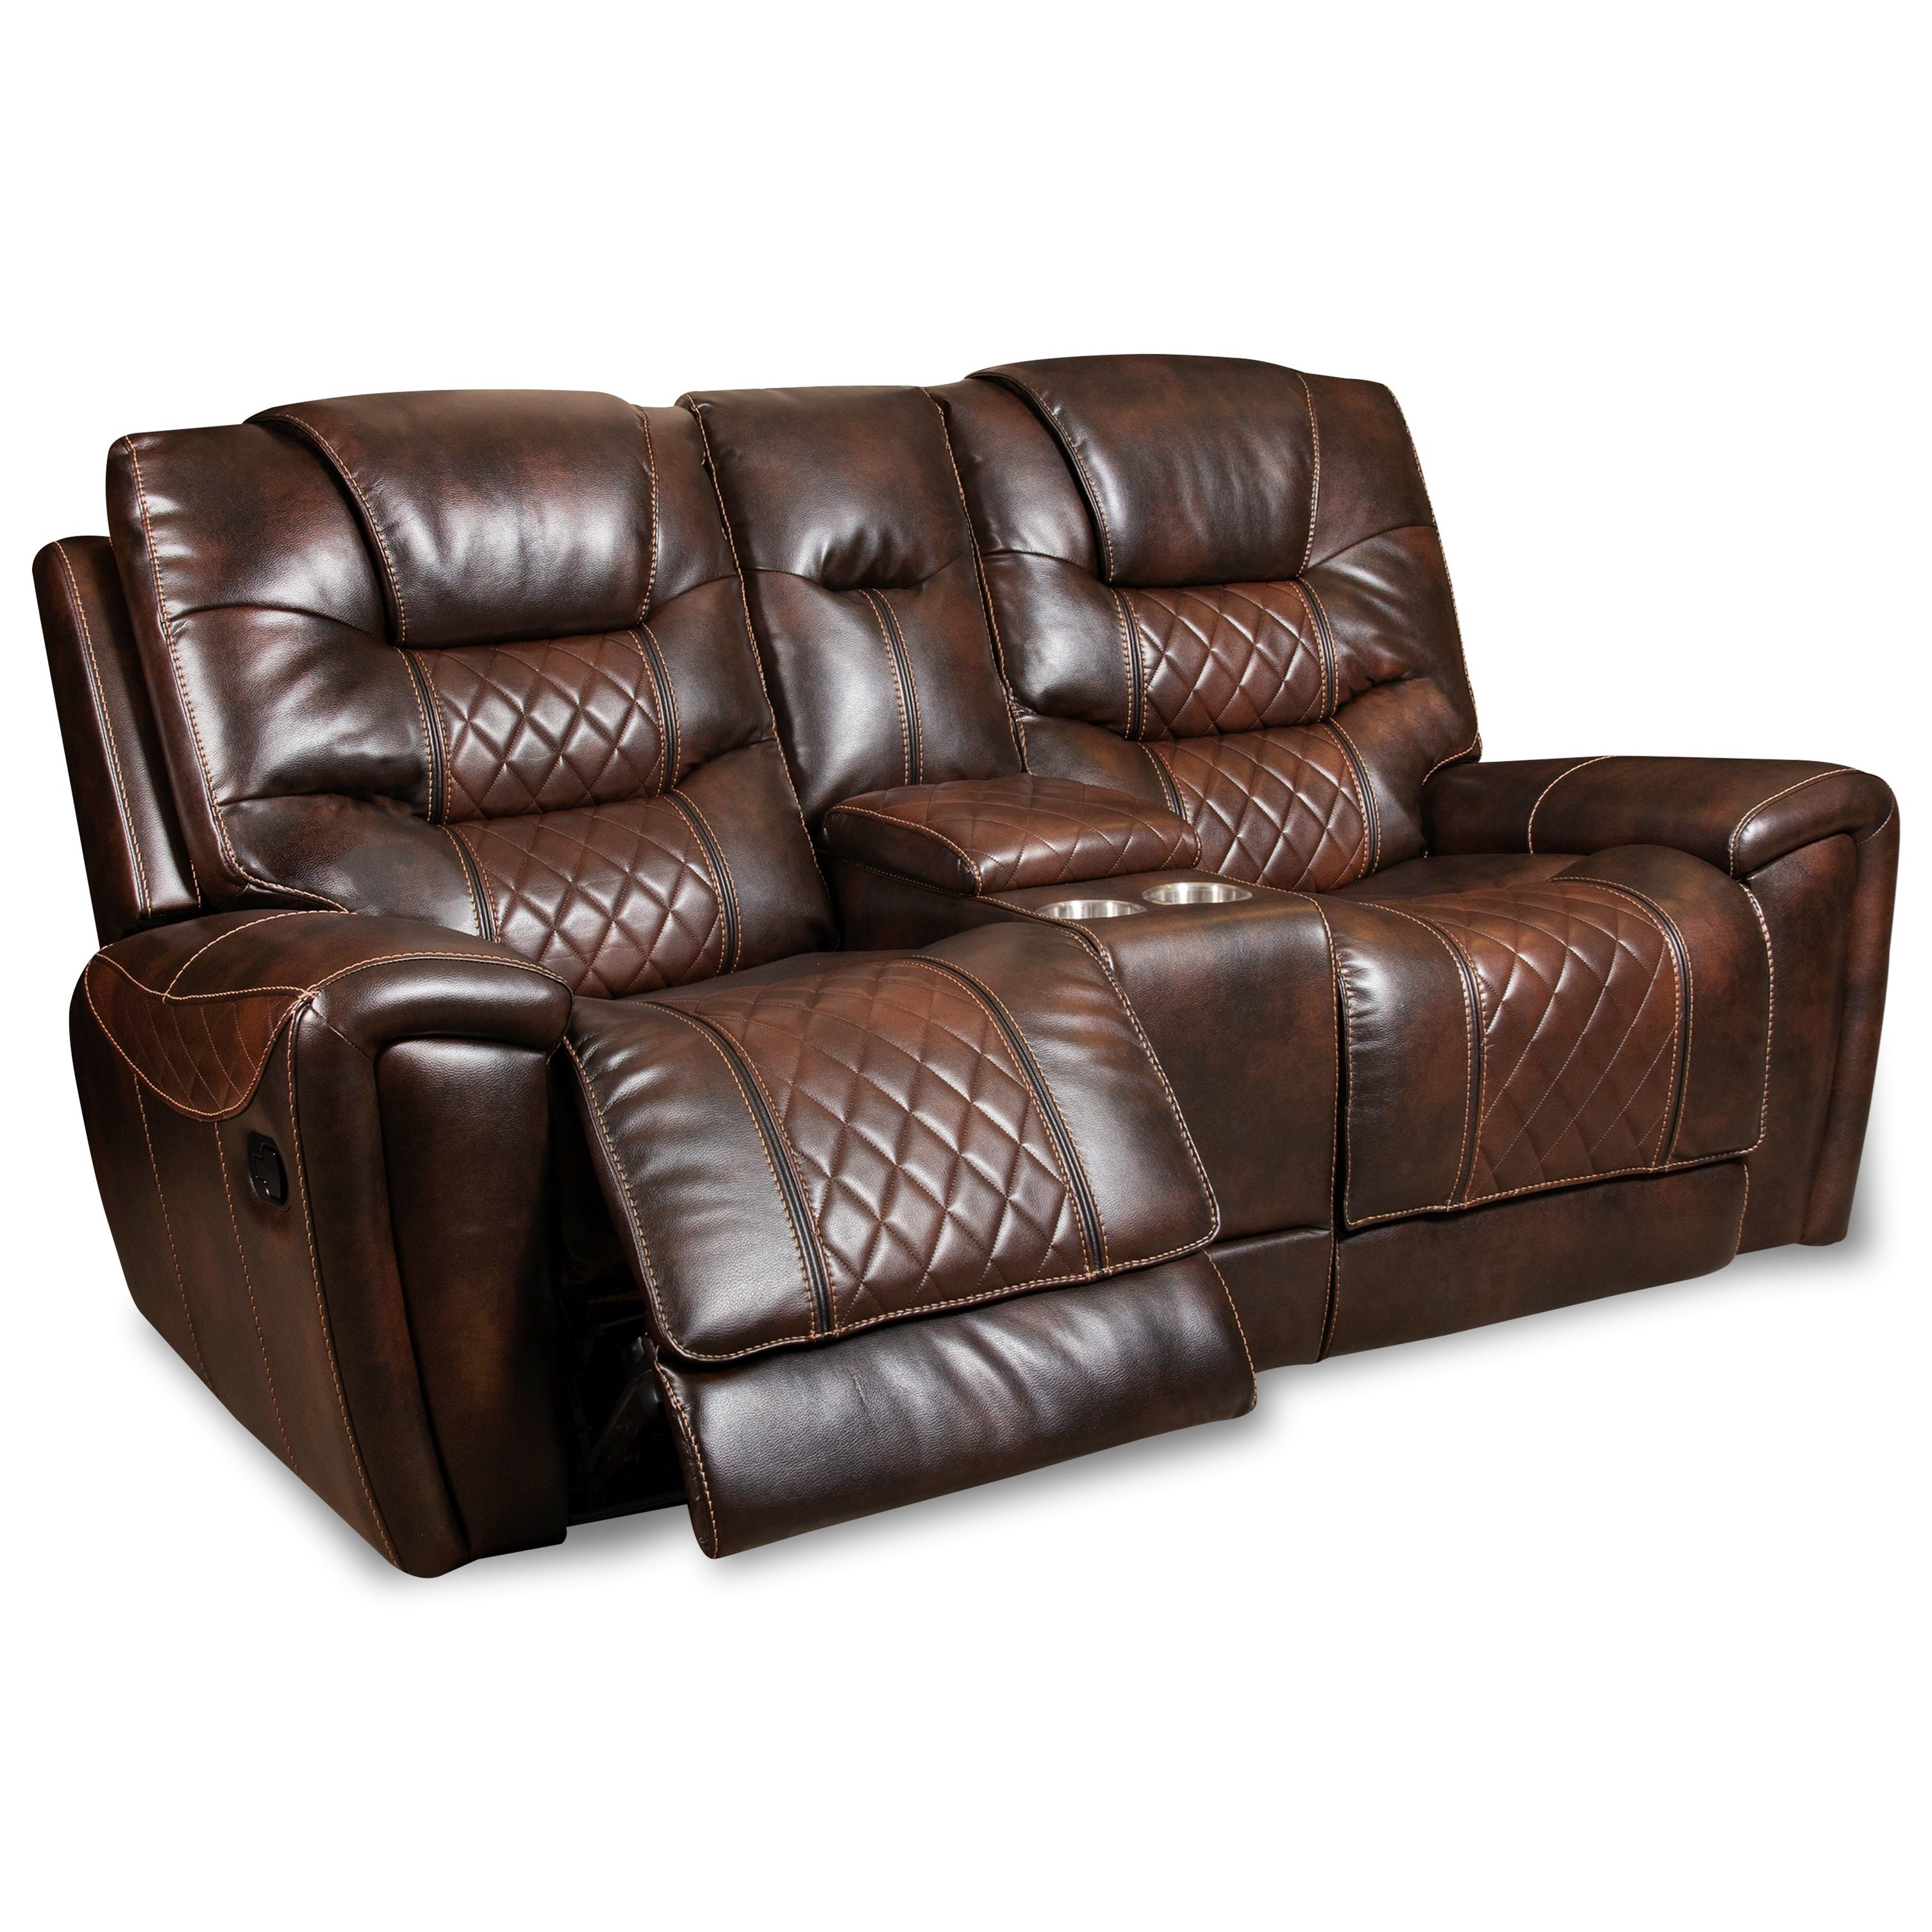 98701 Reclining Loveseat with Console at Virginia Furniture Market